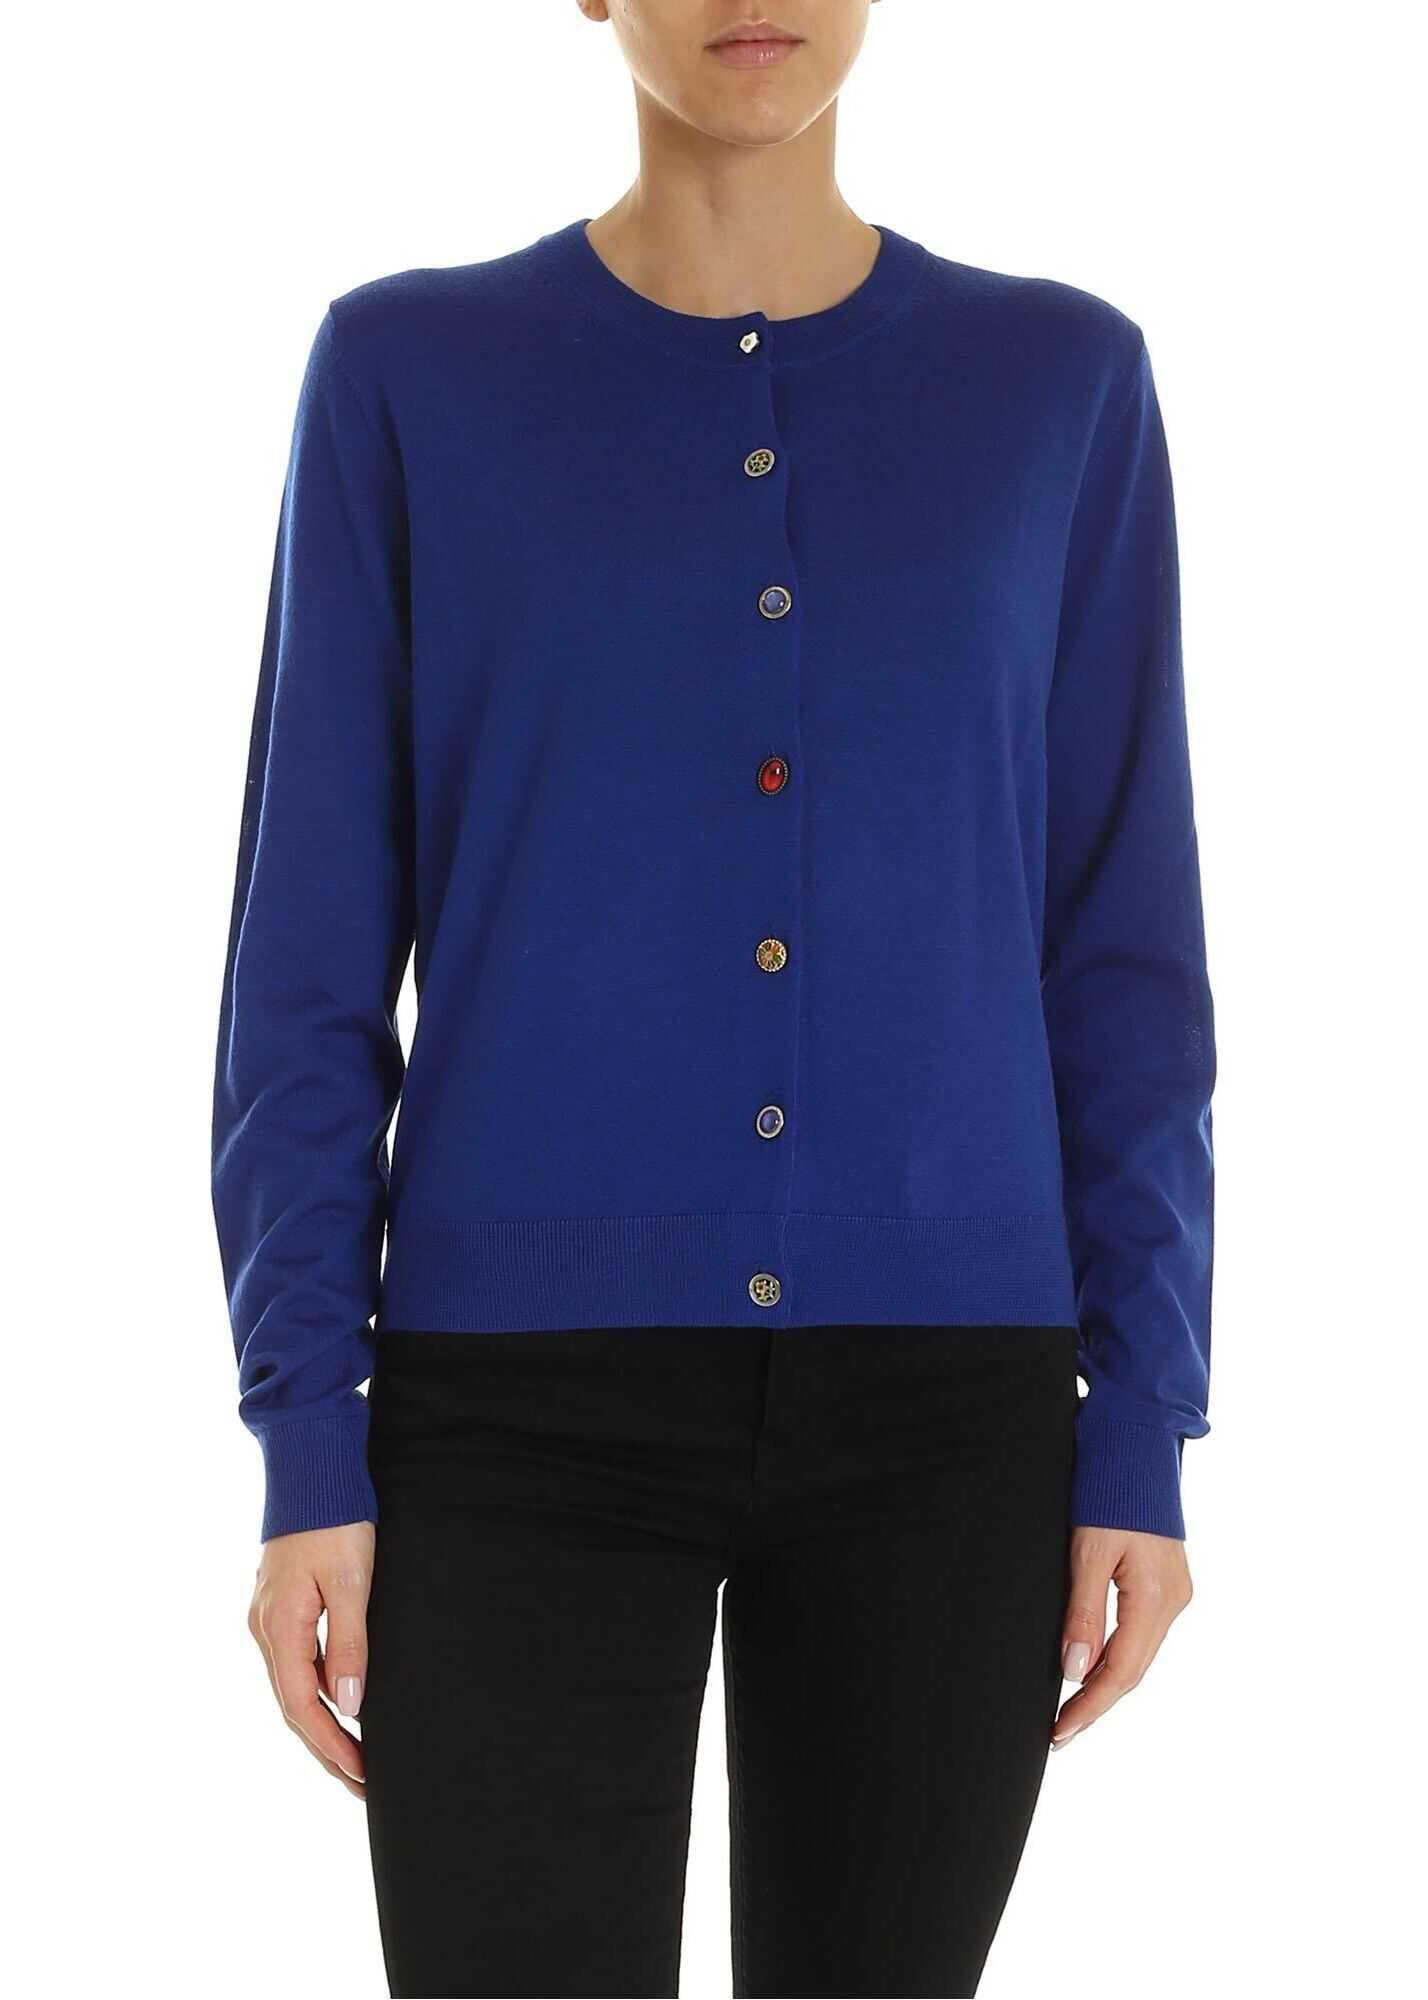 PS by Paul Smith Unpaired Buttons Cardigan In Blue Blue